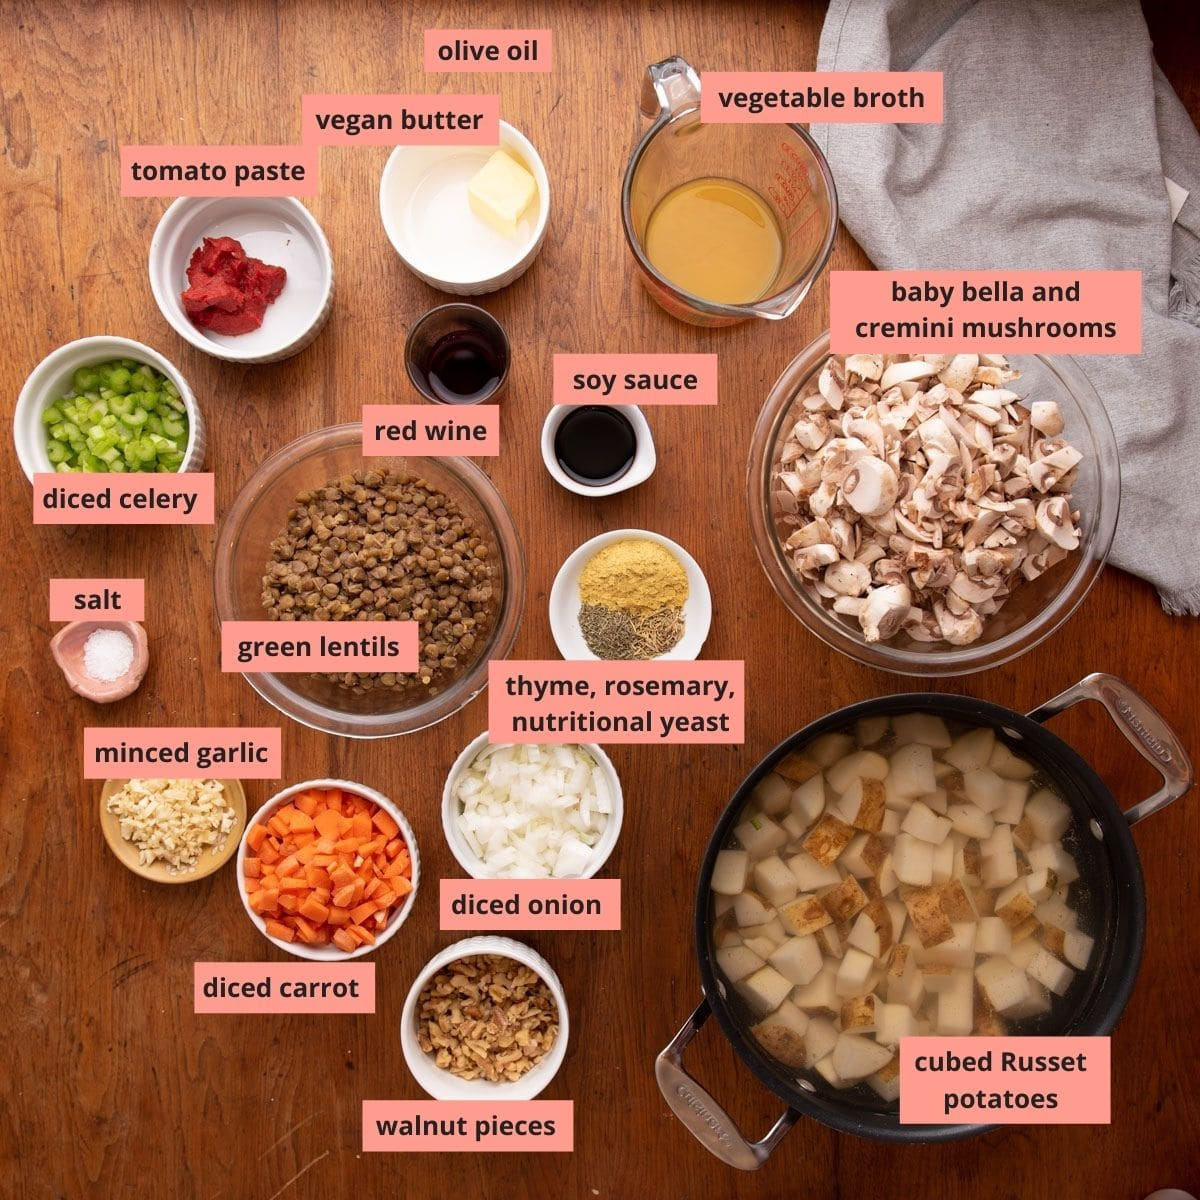 Labeled ingredients used to make shepherd's pie